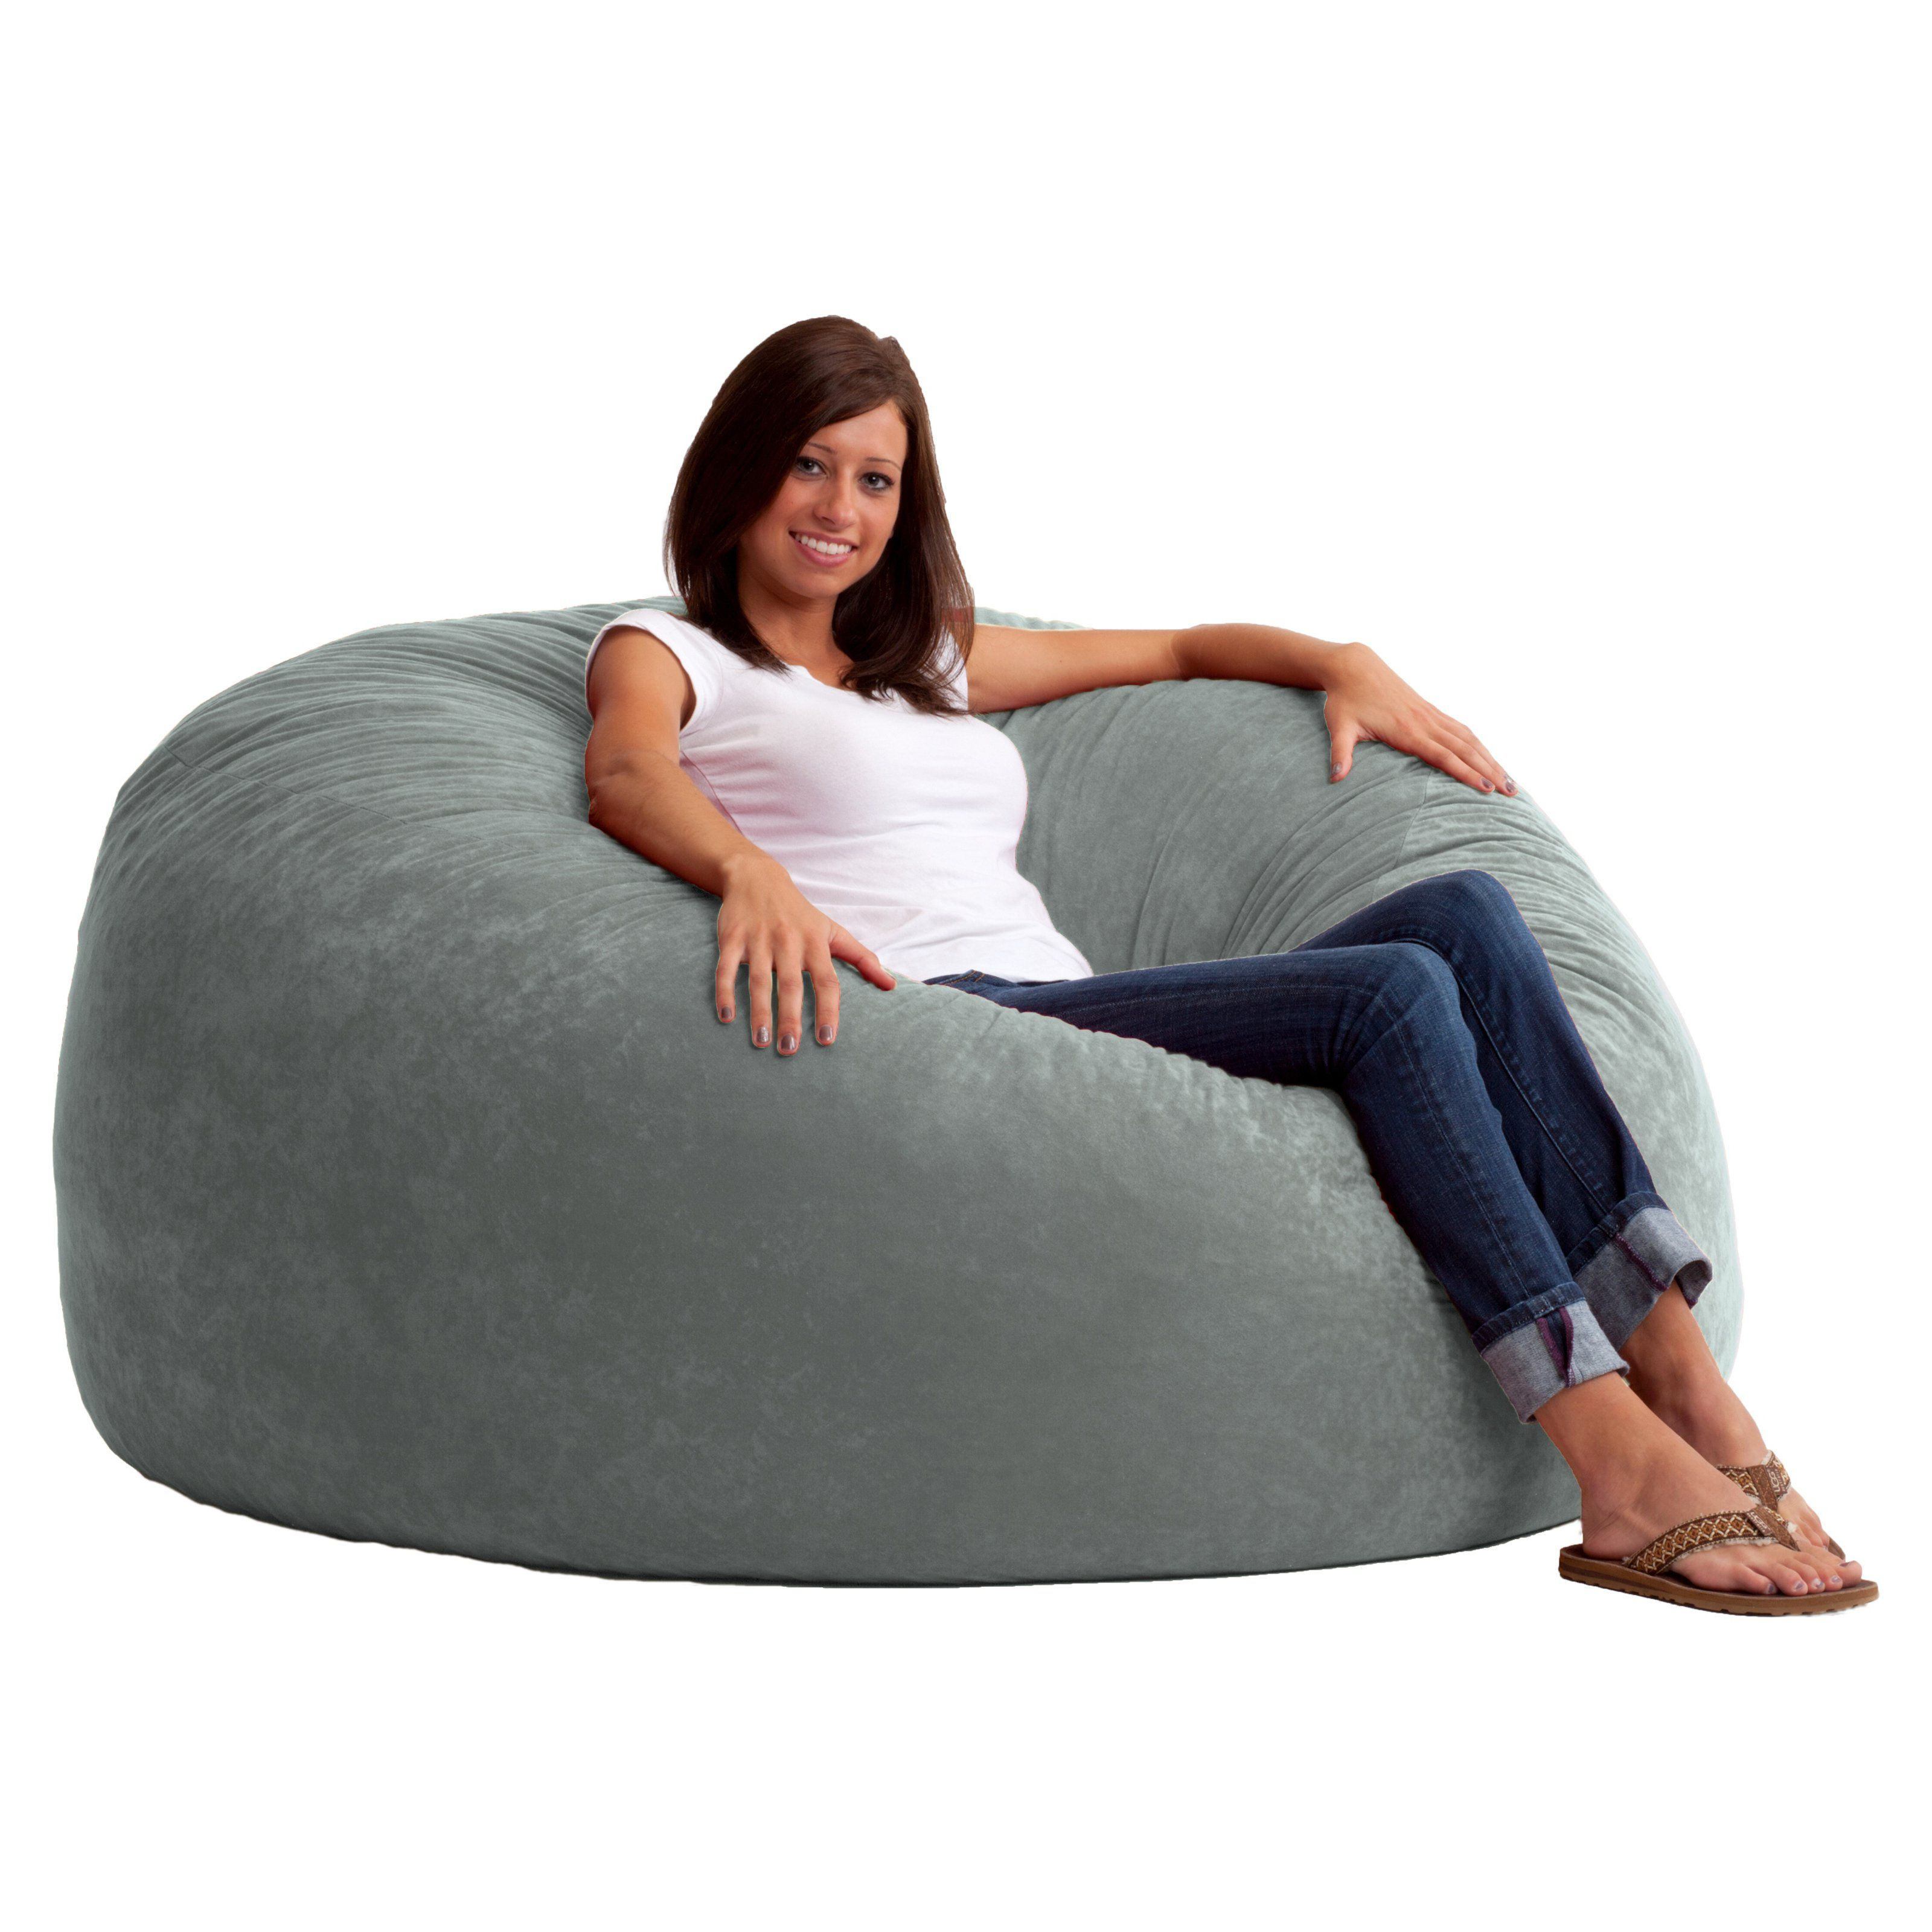 FUF 5 ft. King Comfort Suede Bean Bag Sofa No need to